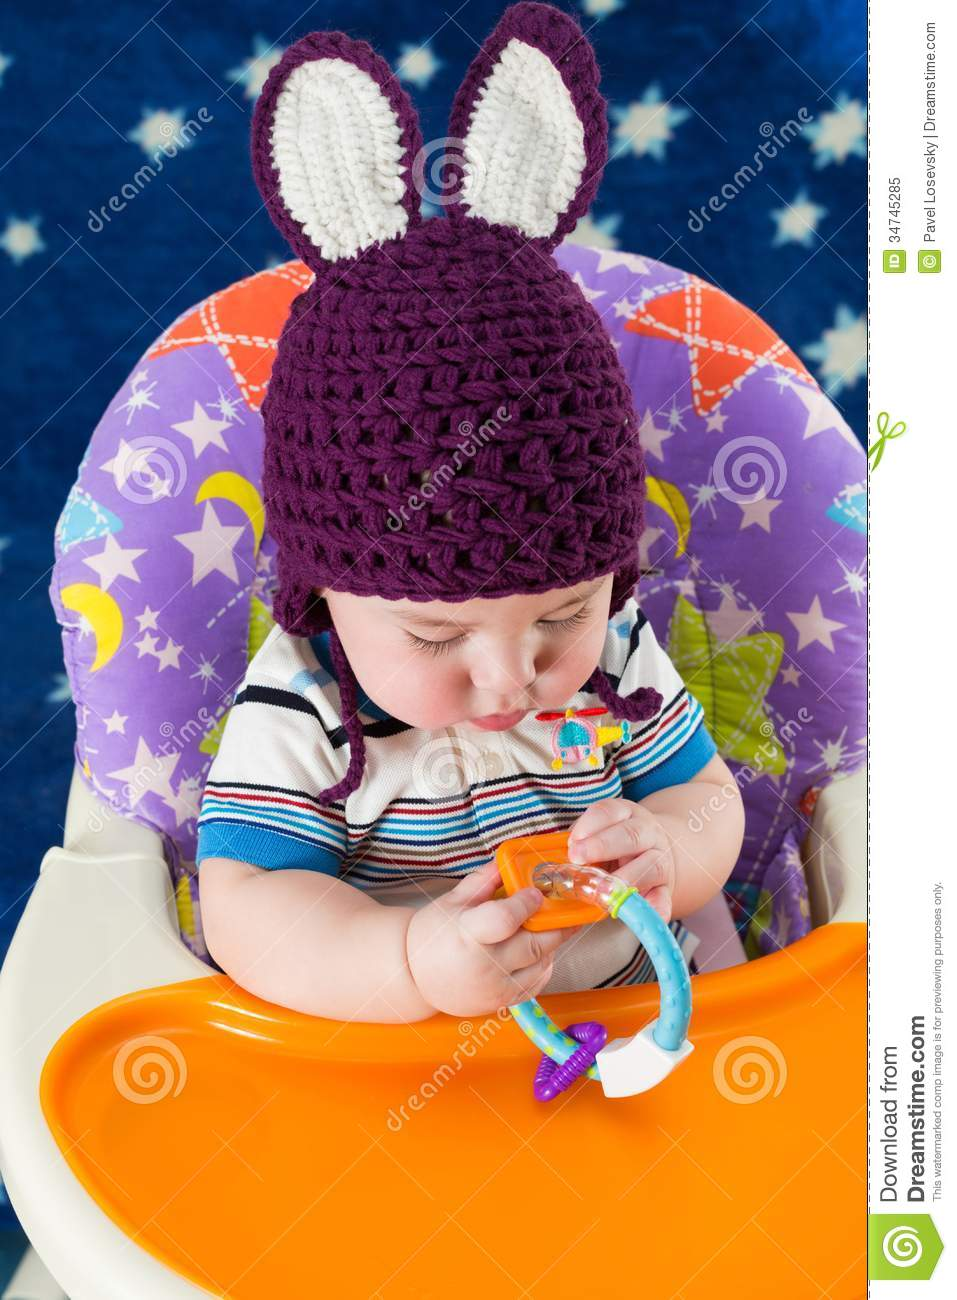 Download A Little Boy In A Knitted Hat With Rabbit Ears Plays Stock Image - Image of knitted, little: 34745285